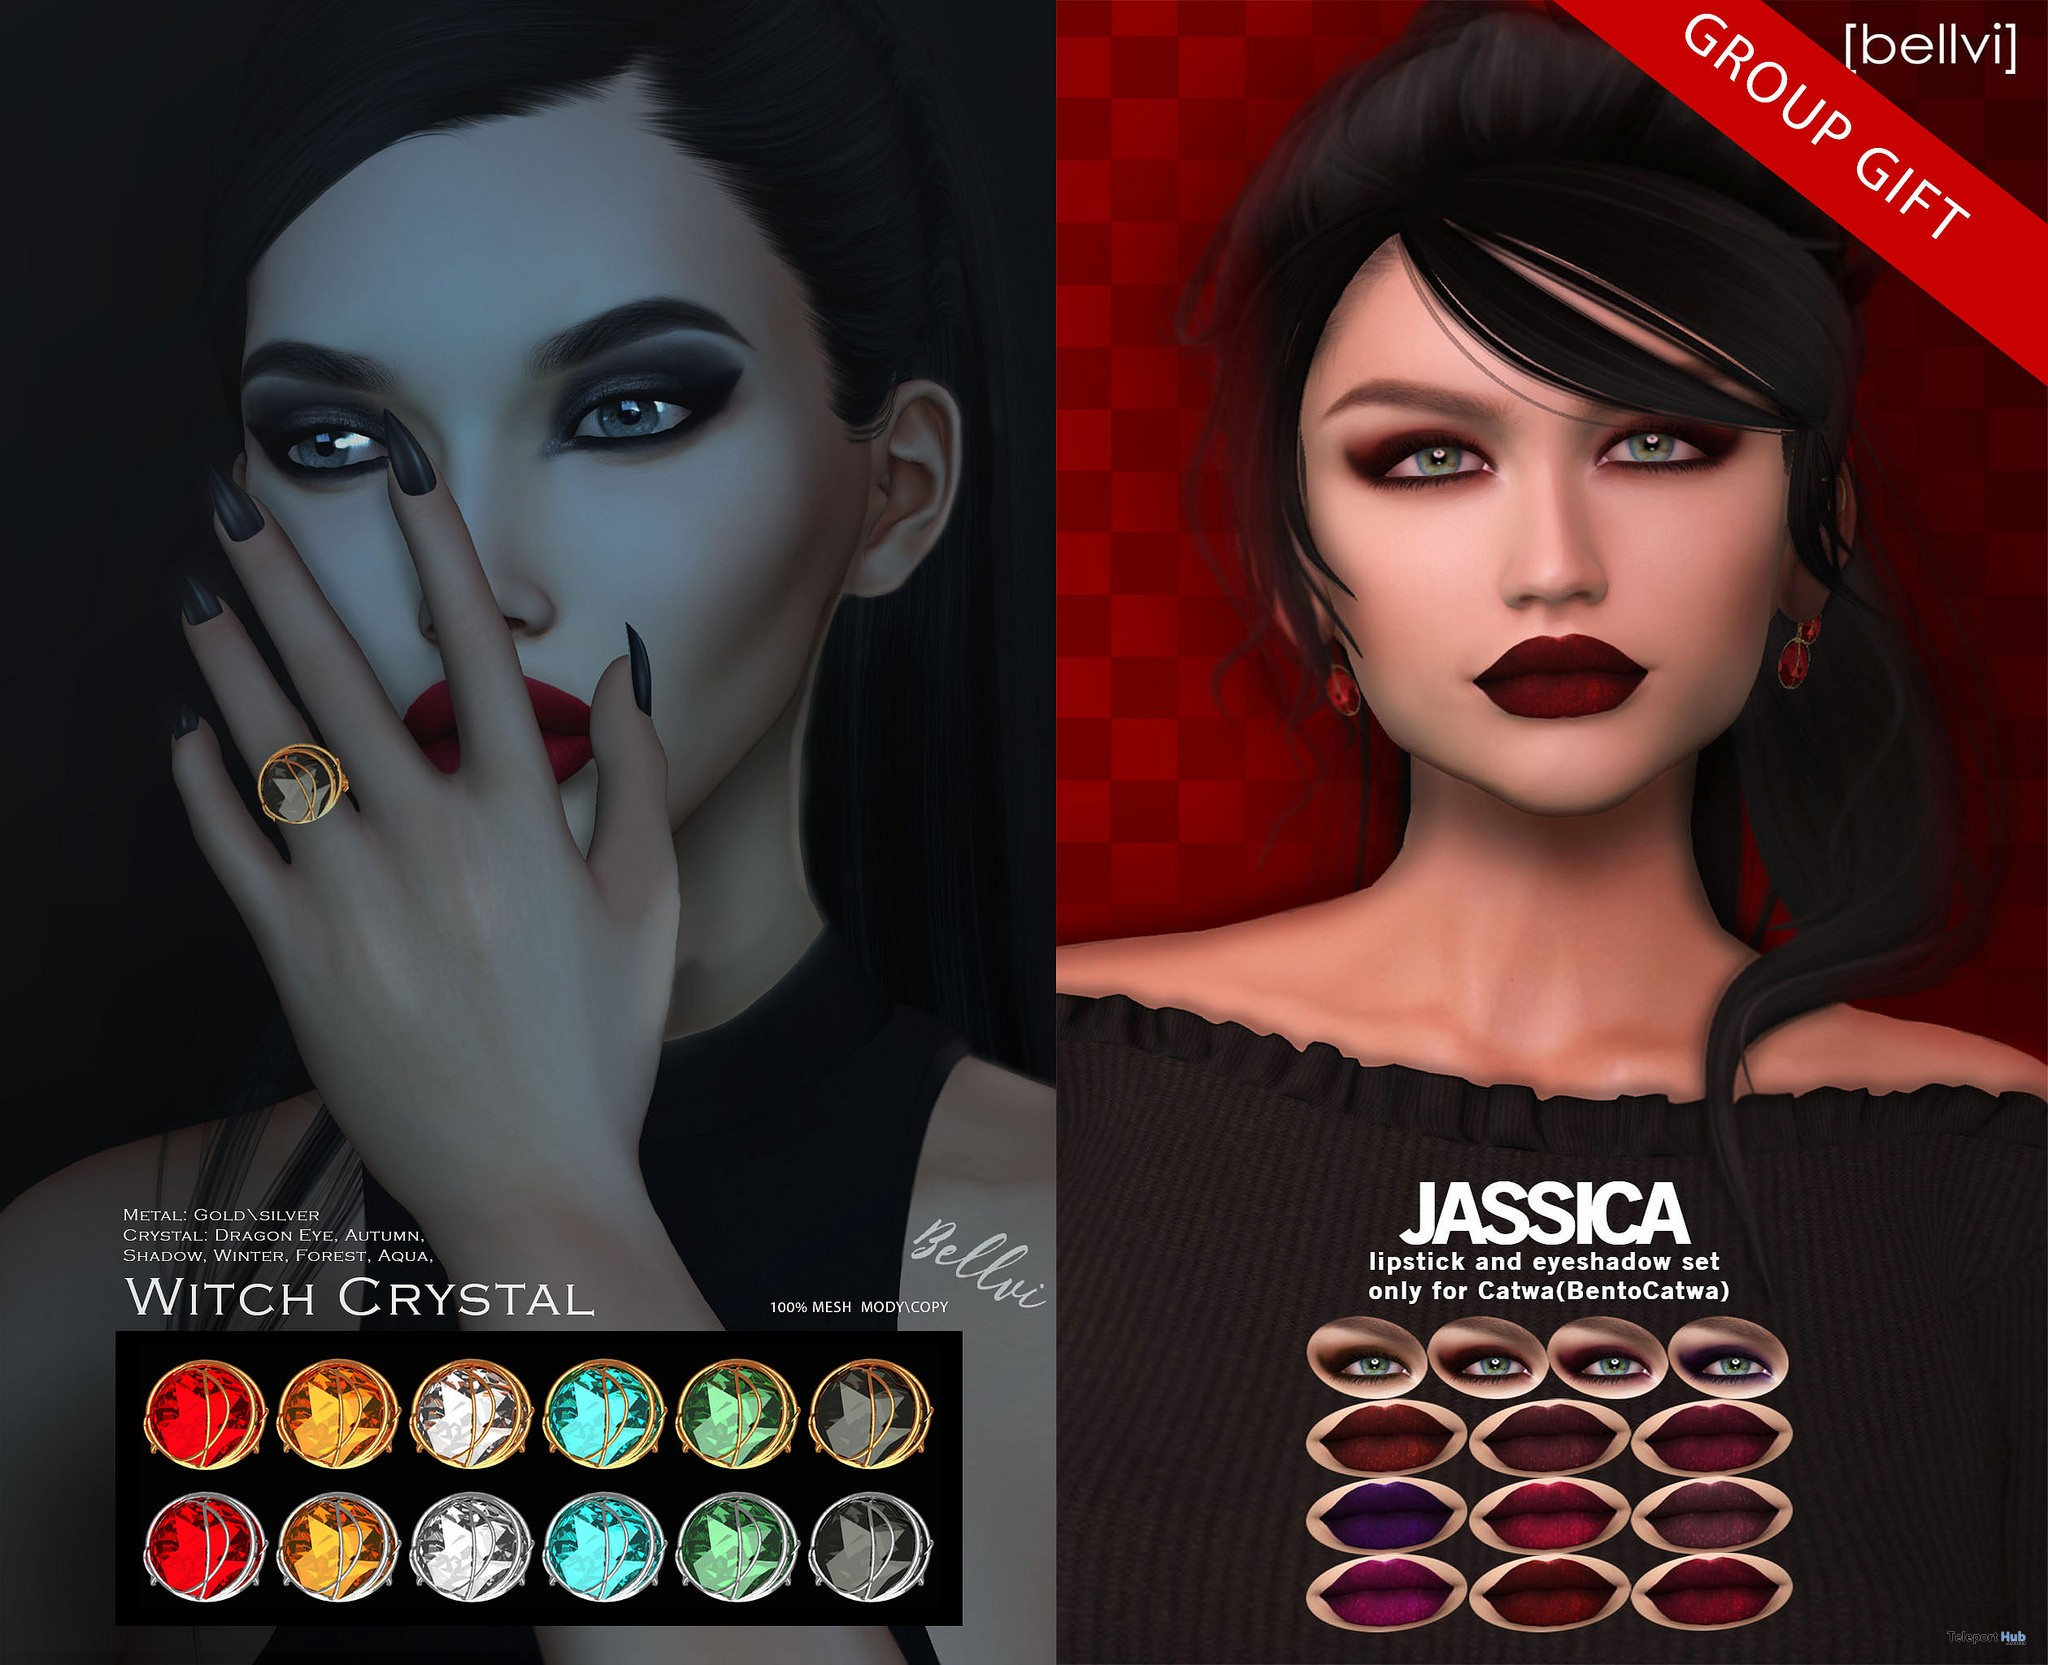 Jassica Catwa Makeup Set & Witch Crystal Ring Halloween 2017 Group Gift by [bellvi] - Teleport Hub - teleporthub.com